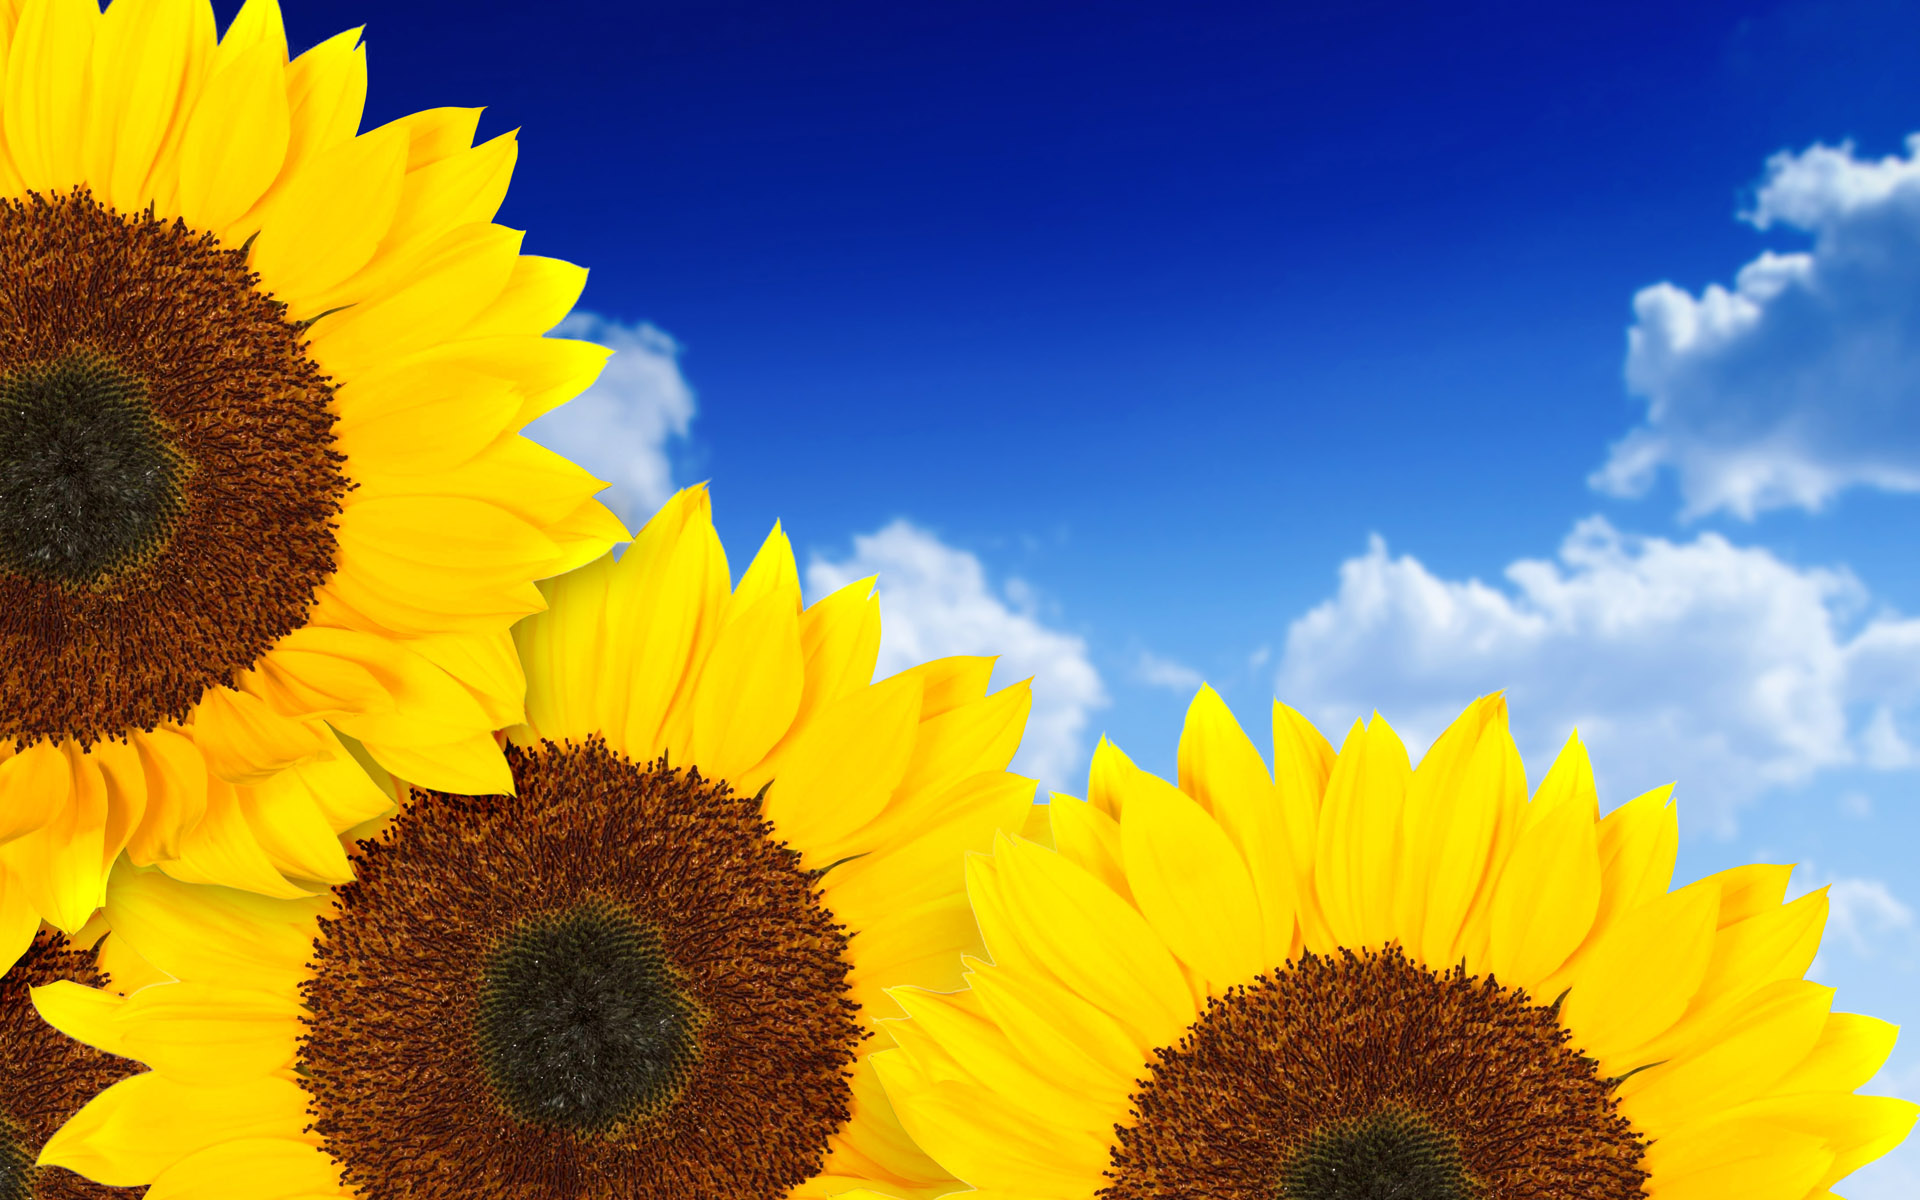 Pure Yellow Sunflowers Wallpapers | Wallpapers HD